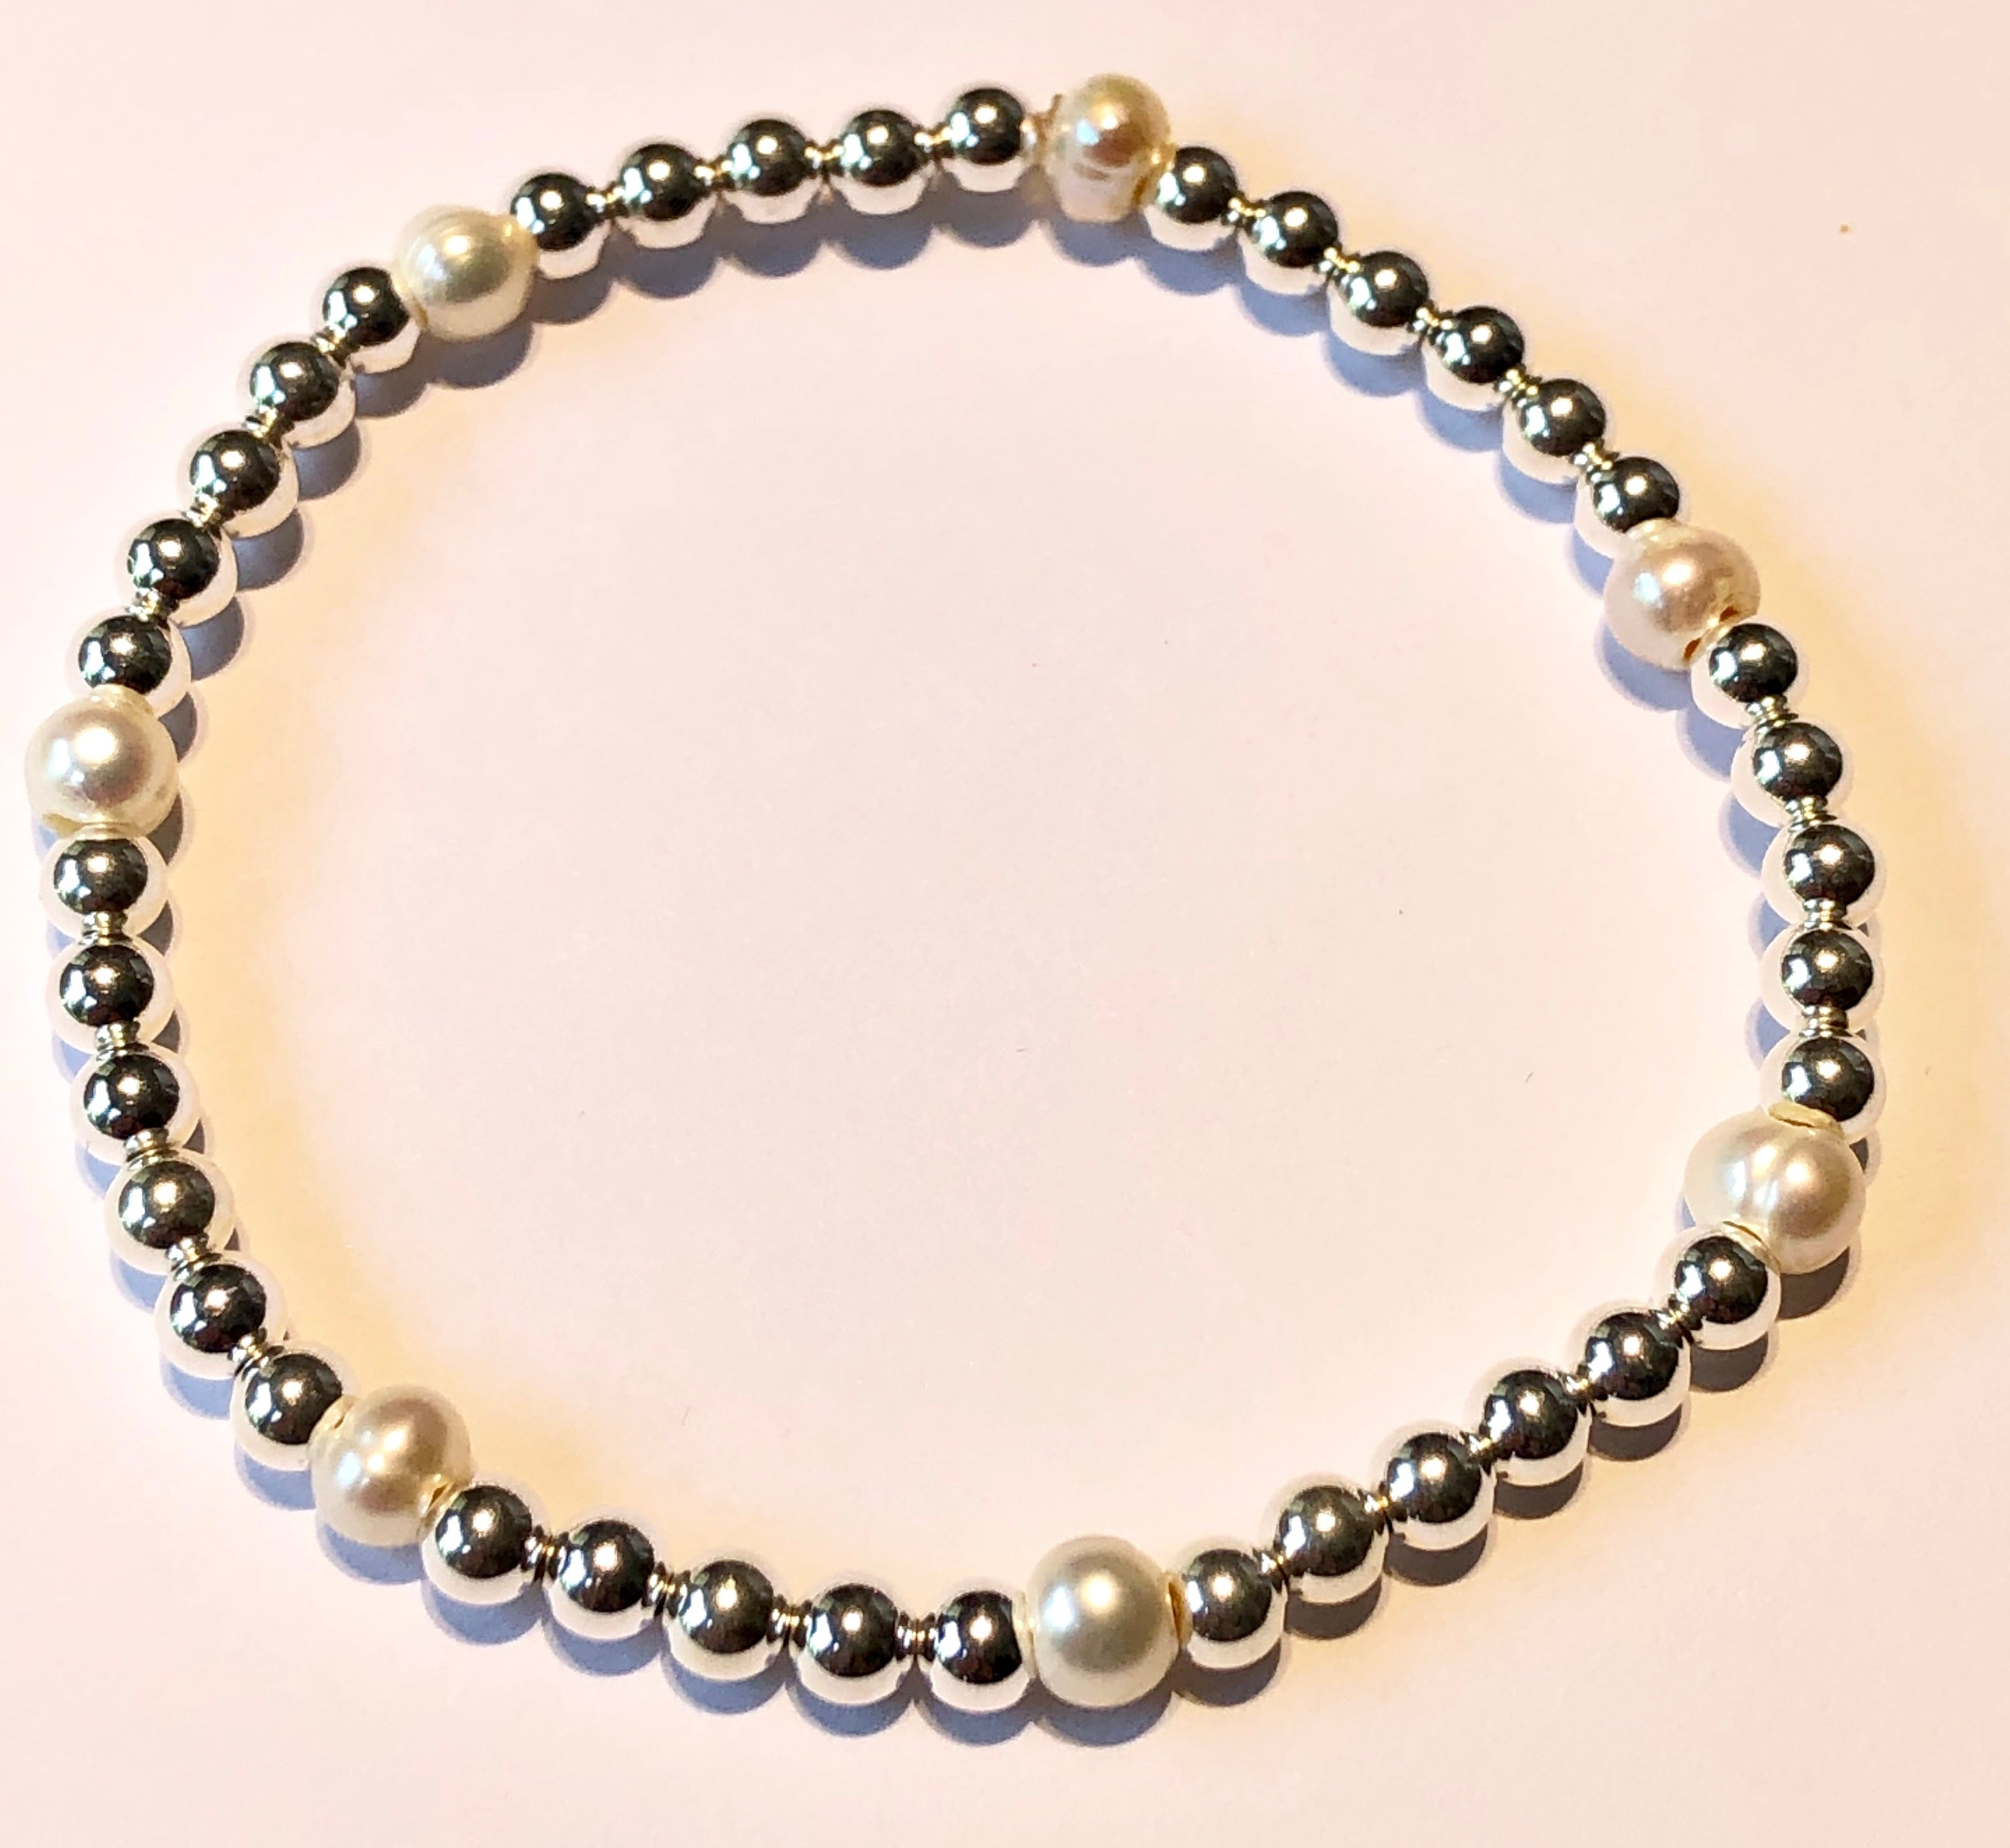 4mm Sterling Silver Bead Bracelet with 3 Fresh Water Pearls